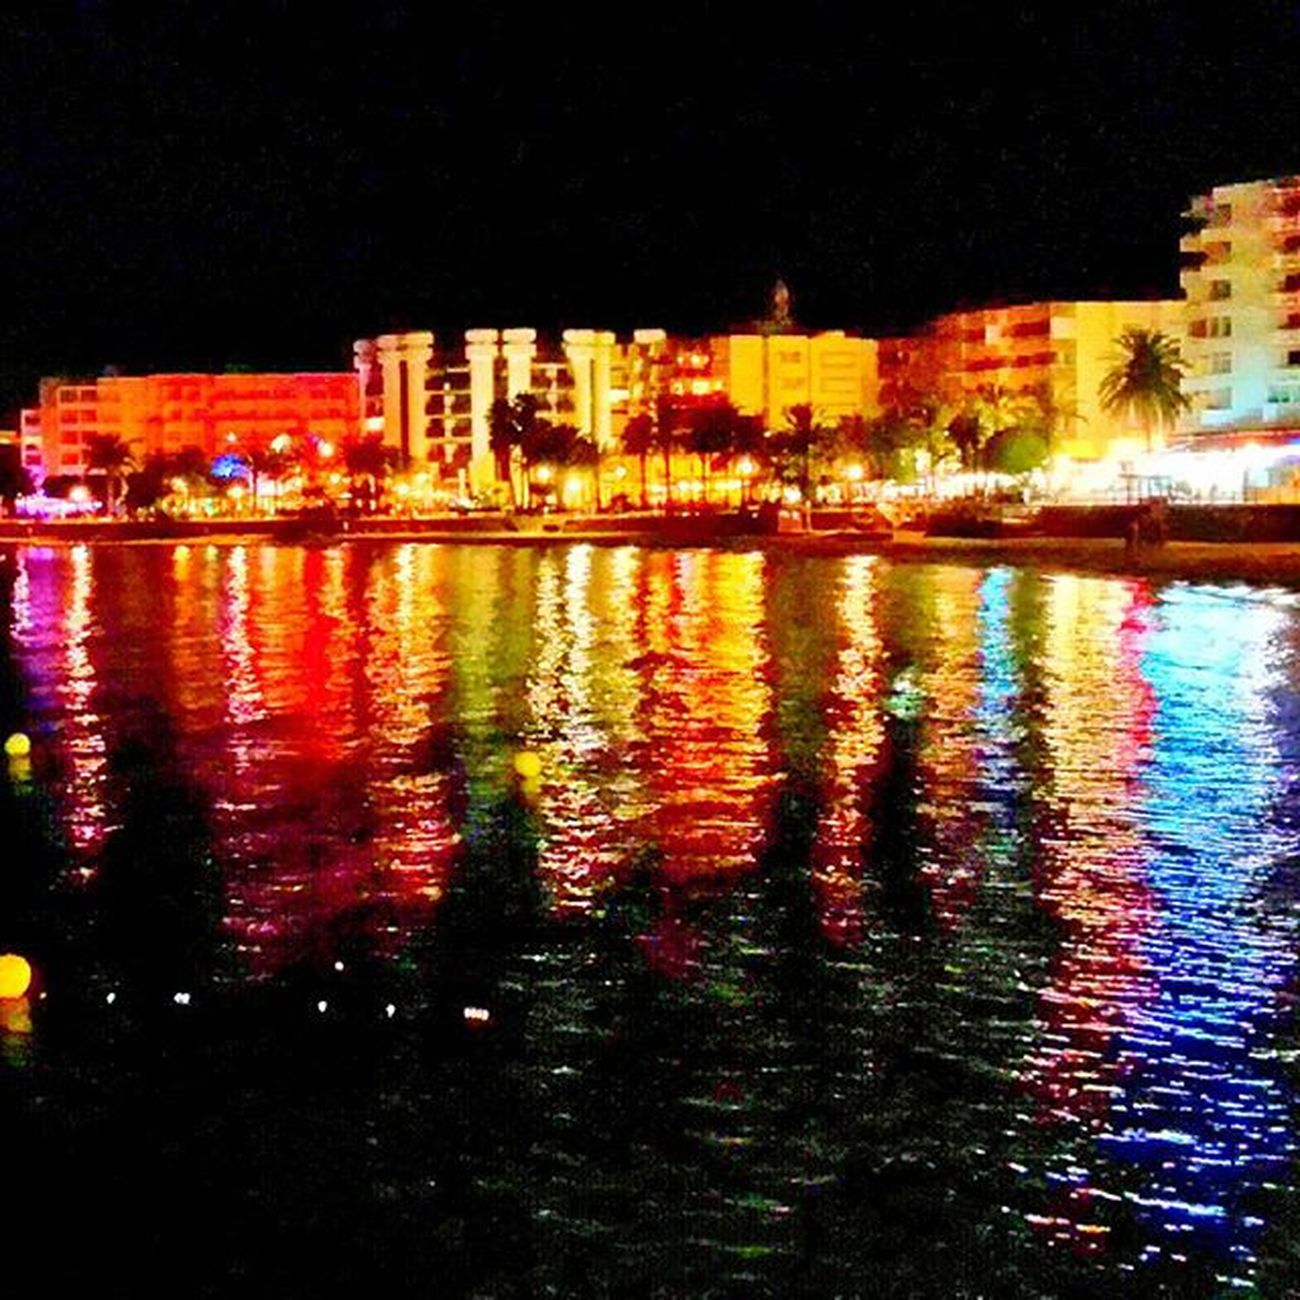 Noche de verano . Santa Eulária des Riu Ibiza Ig_ibiza Descubriendobaleares Total_night Total_city Instantes_fotograficos Todoclick Ok_landscape_ Pg_mistica_romance Roadwarrior_hdr Ok_hdr Love_hdr_colour Hdr_lovers Hdr_captures Great_captures_HDR Travelmag_hdr Hdr_pics Ig_baleares Bns_mod Hdr_europe Insta_world_free Instaphotomatix Hdr_spain Estaes_baleares Your_worldcaptures santaeulariadesriu